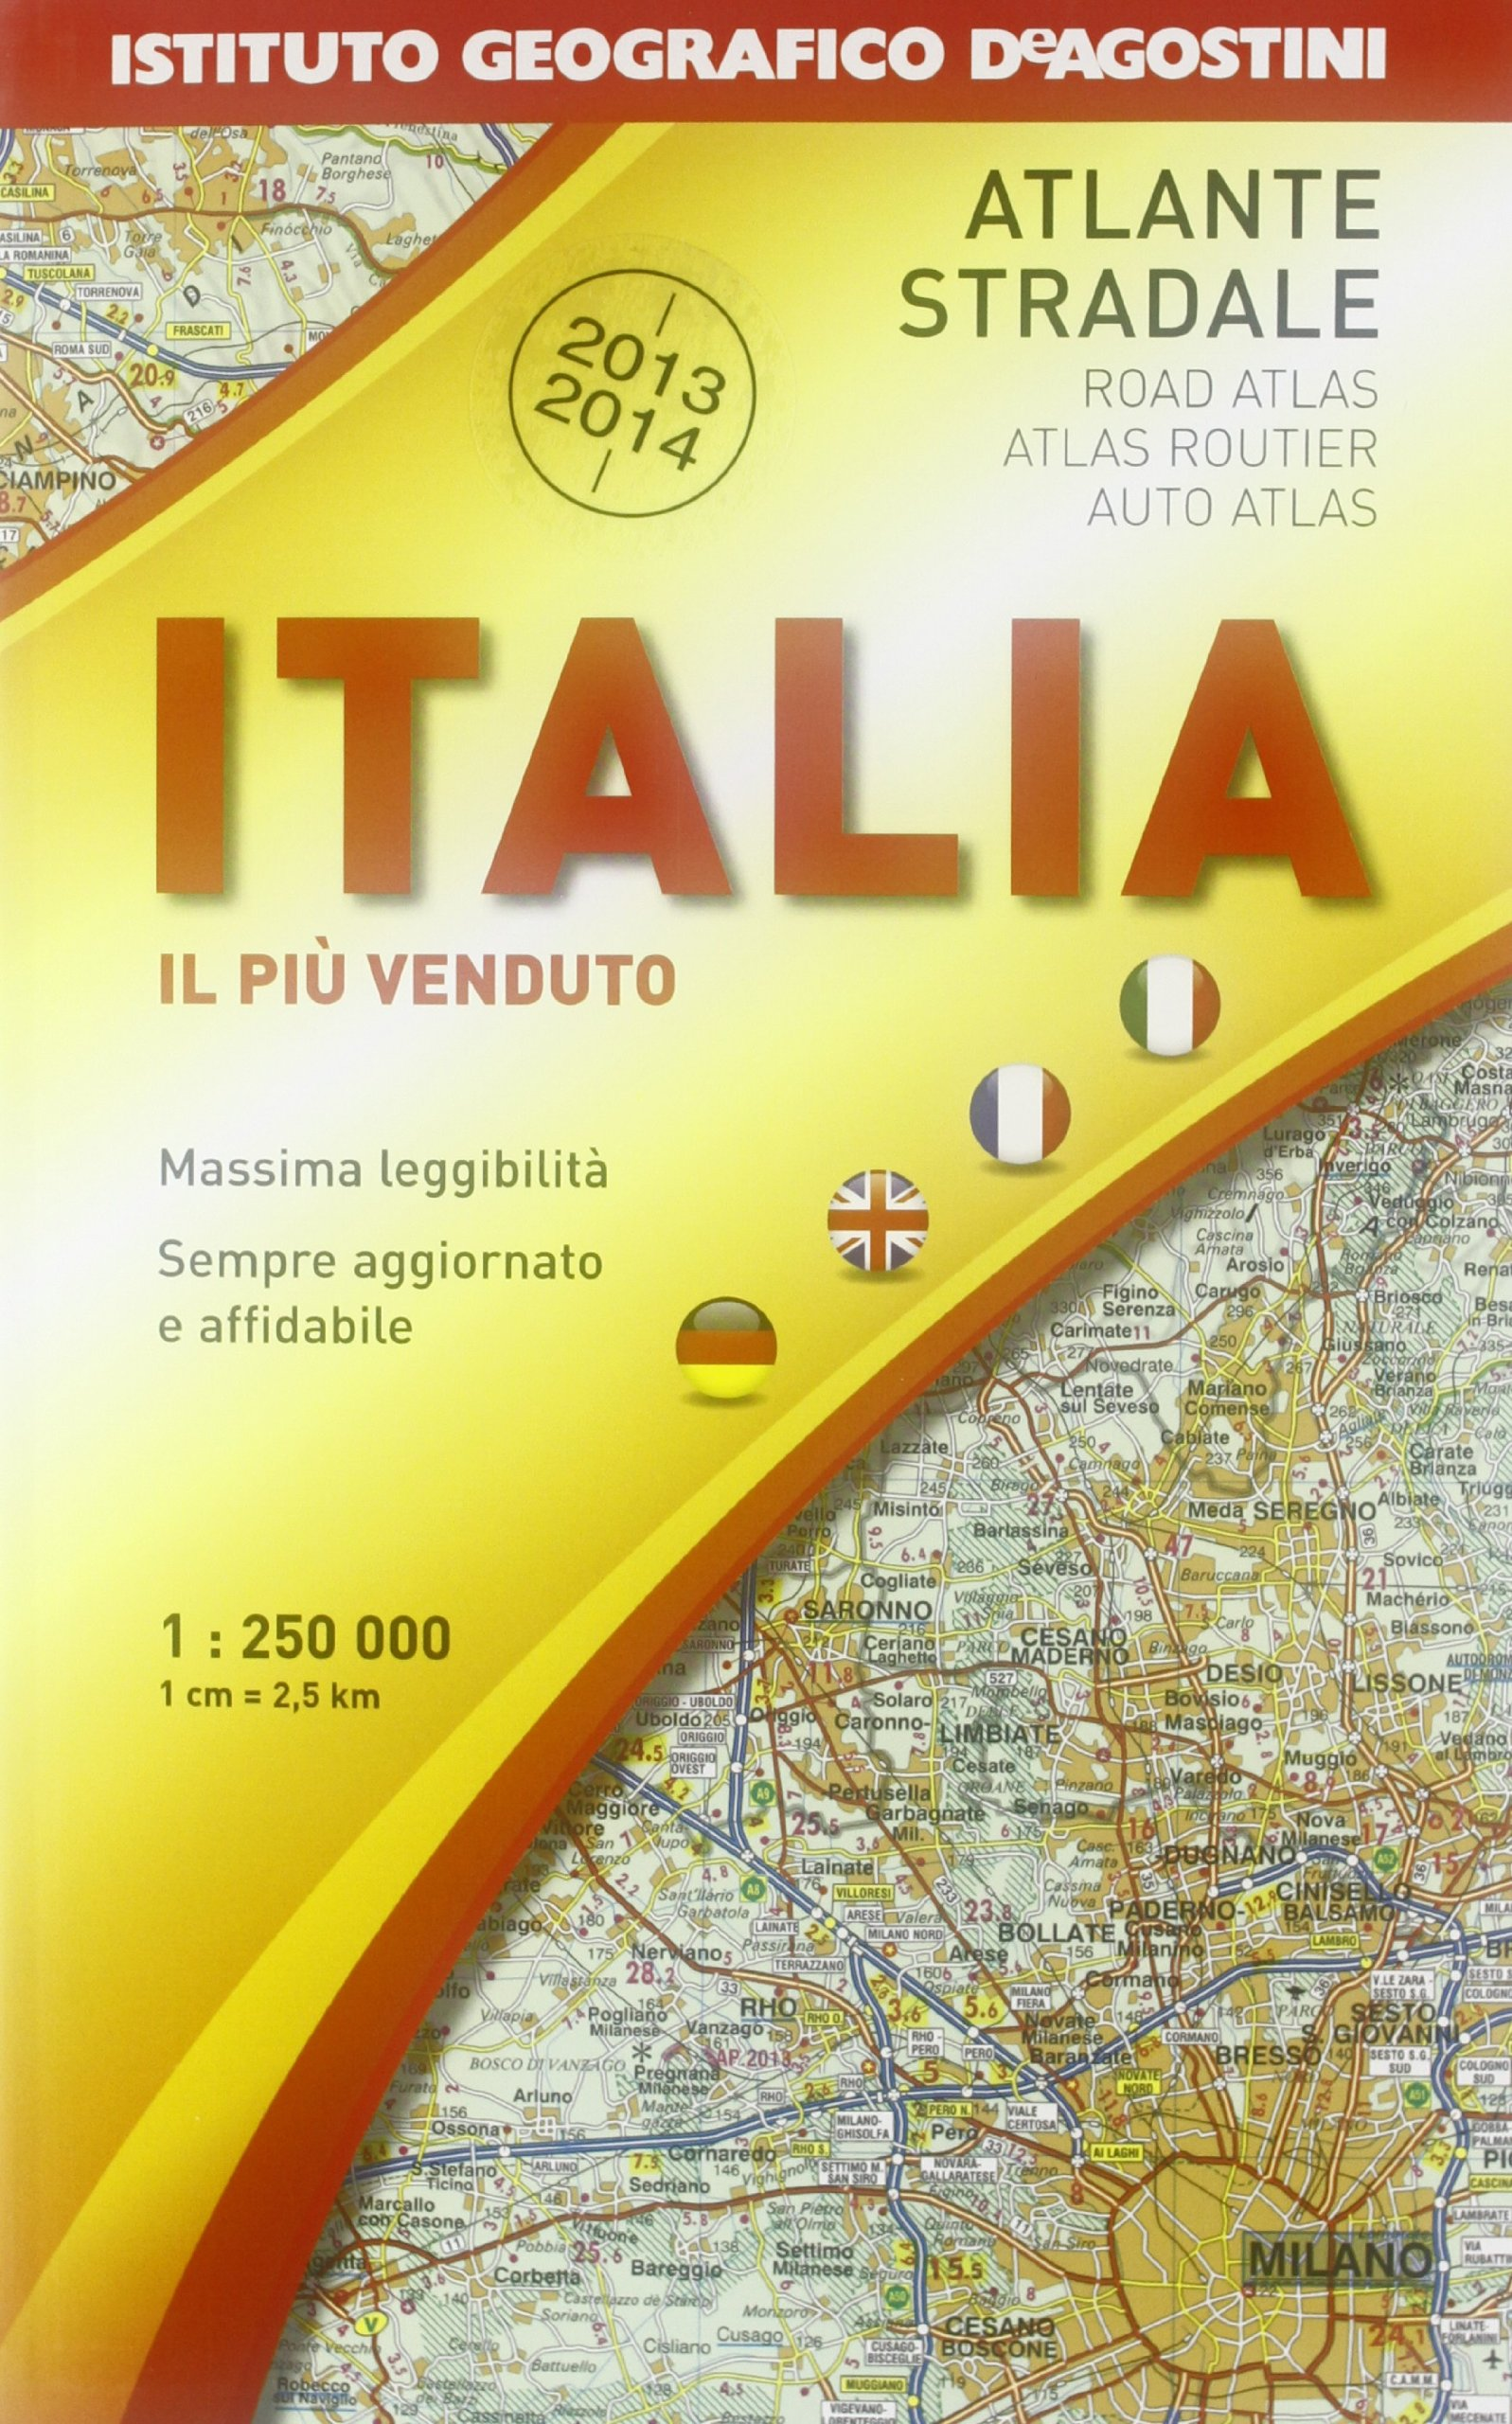 Download Atlante Stradale Italia 1:250.000 2013-2014 